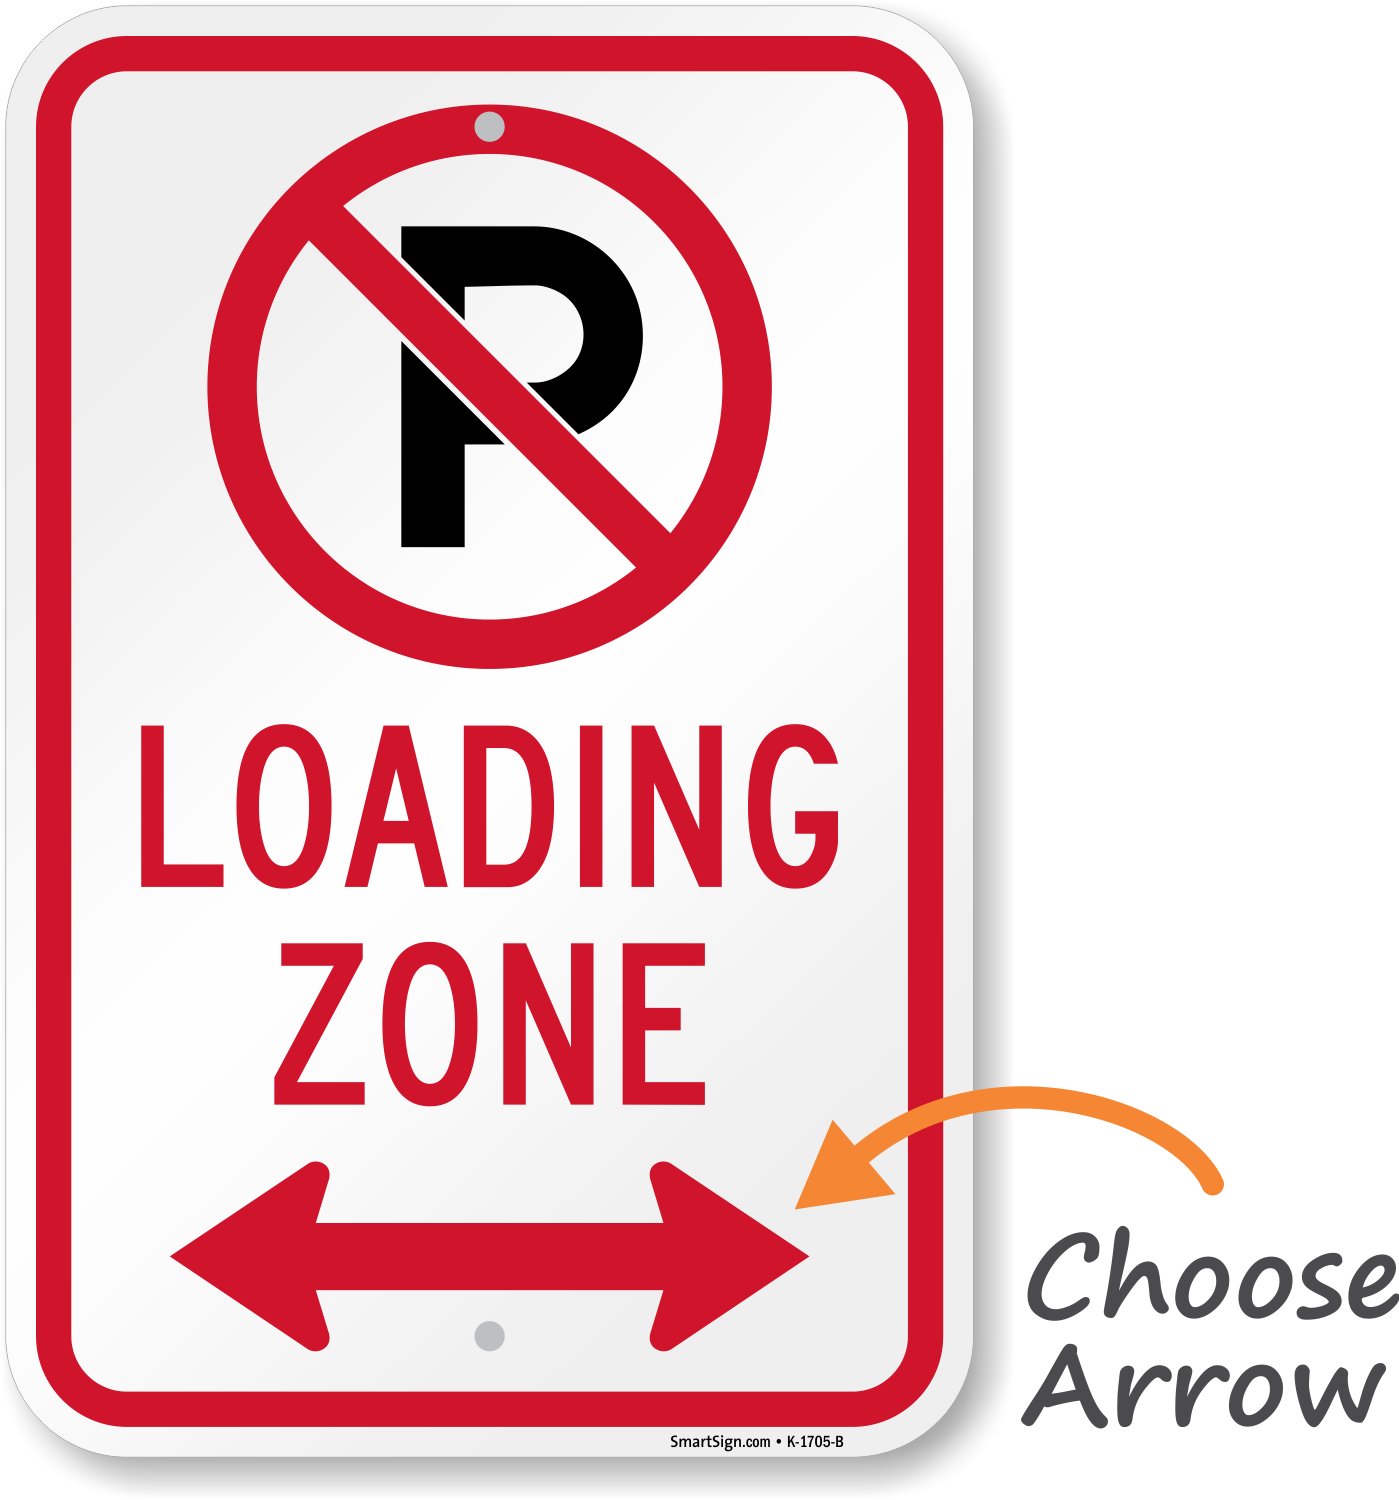 Loading And Unloading Zone Signs  Free Shipping From. How Much Does A Security System Cost. Heating And Air Conditioning Service. Hartford Police Department Phone Number. Choclate Chip Pancakes Joint Knowledge Online. Hormone Replacement Therapy Las Vegas. Commercial Insurance For Cars. Machinery Movers Chicago Drexel School Of Law. Unt Application Deadline Left Temple Headache